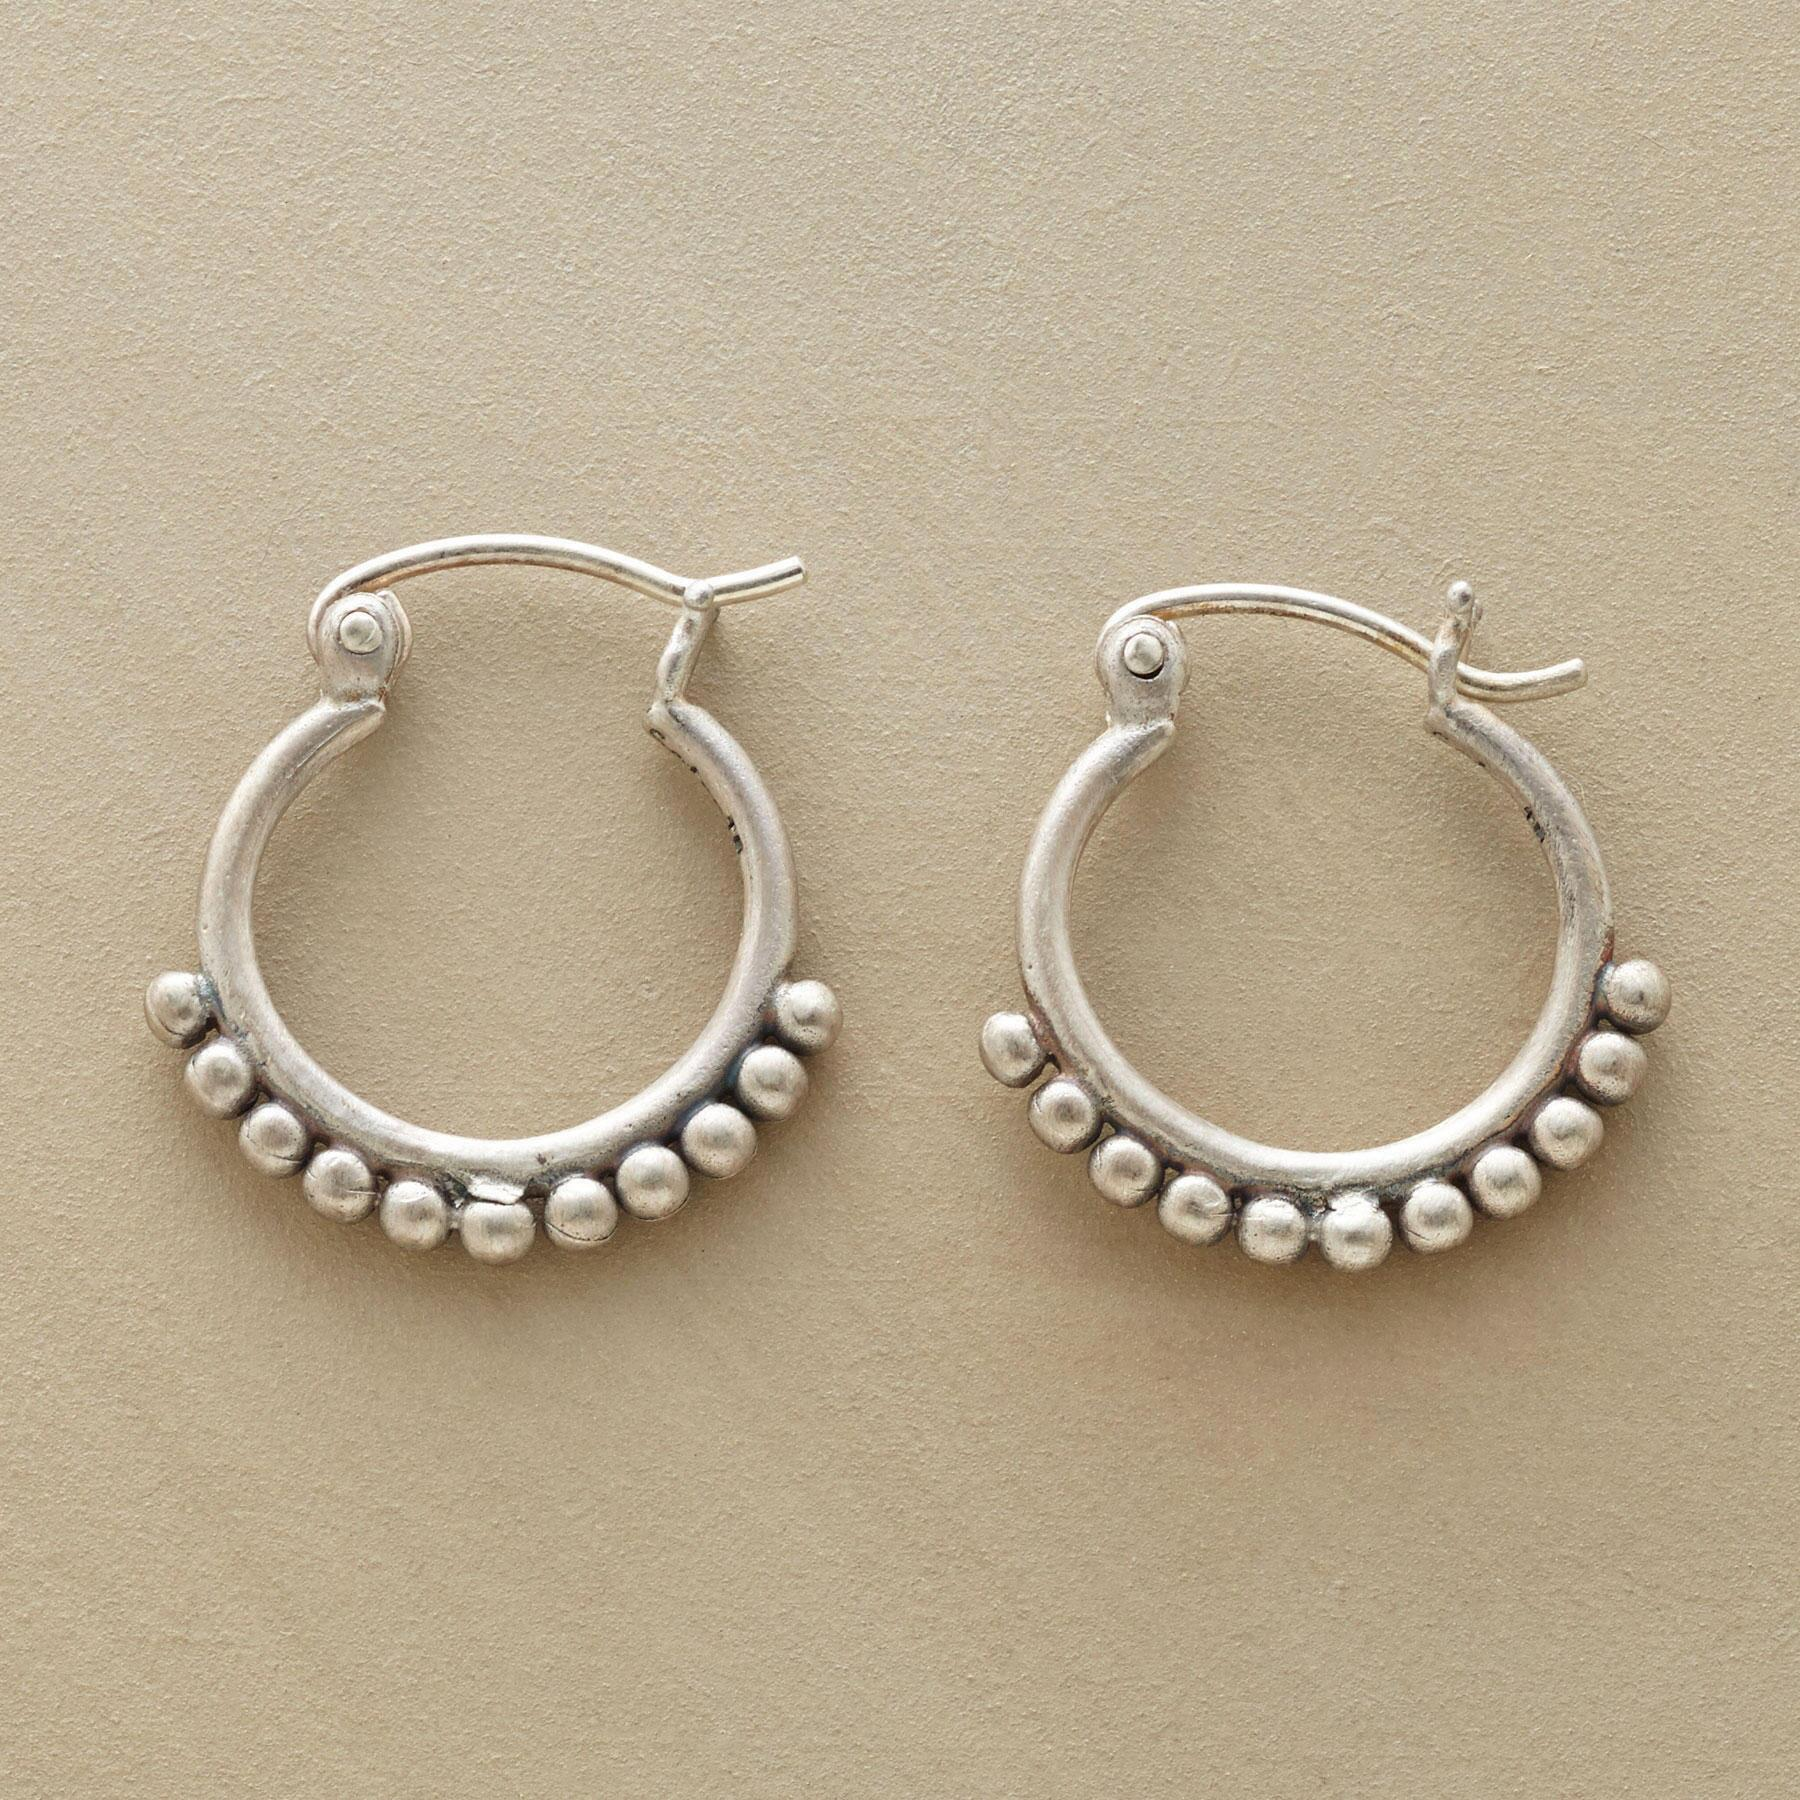 SILVER BEAD HOOP EARRINGS: View 1